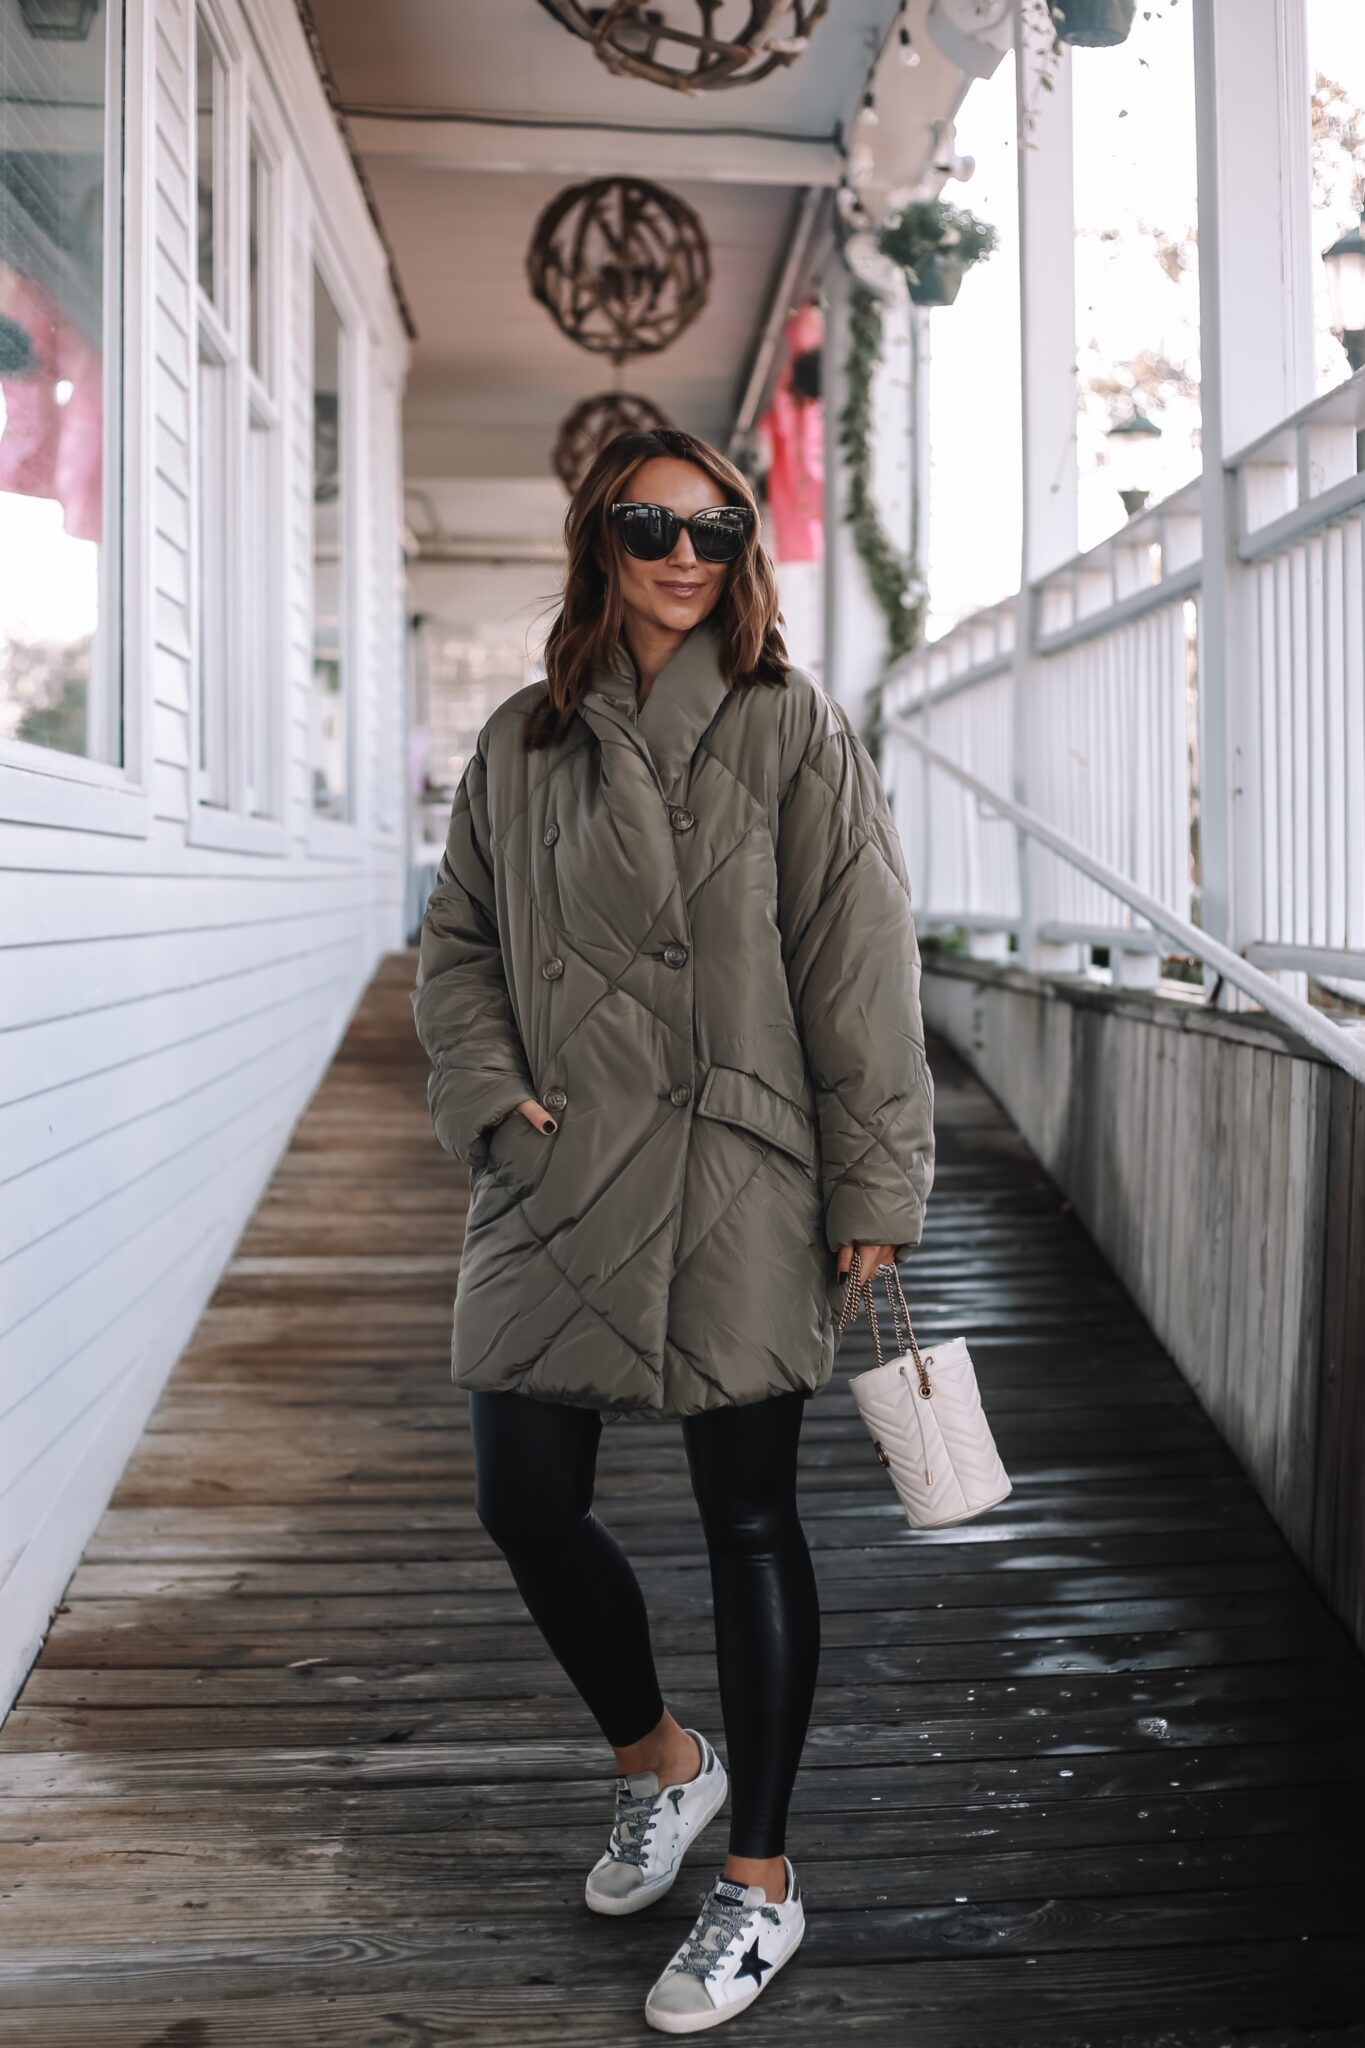 warm jacket outfit, green free people jacket